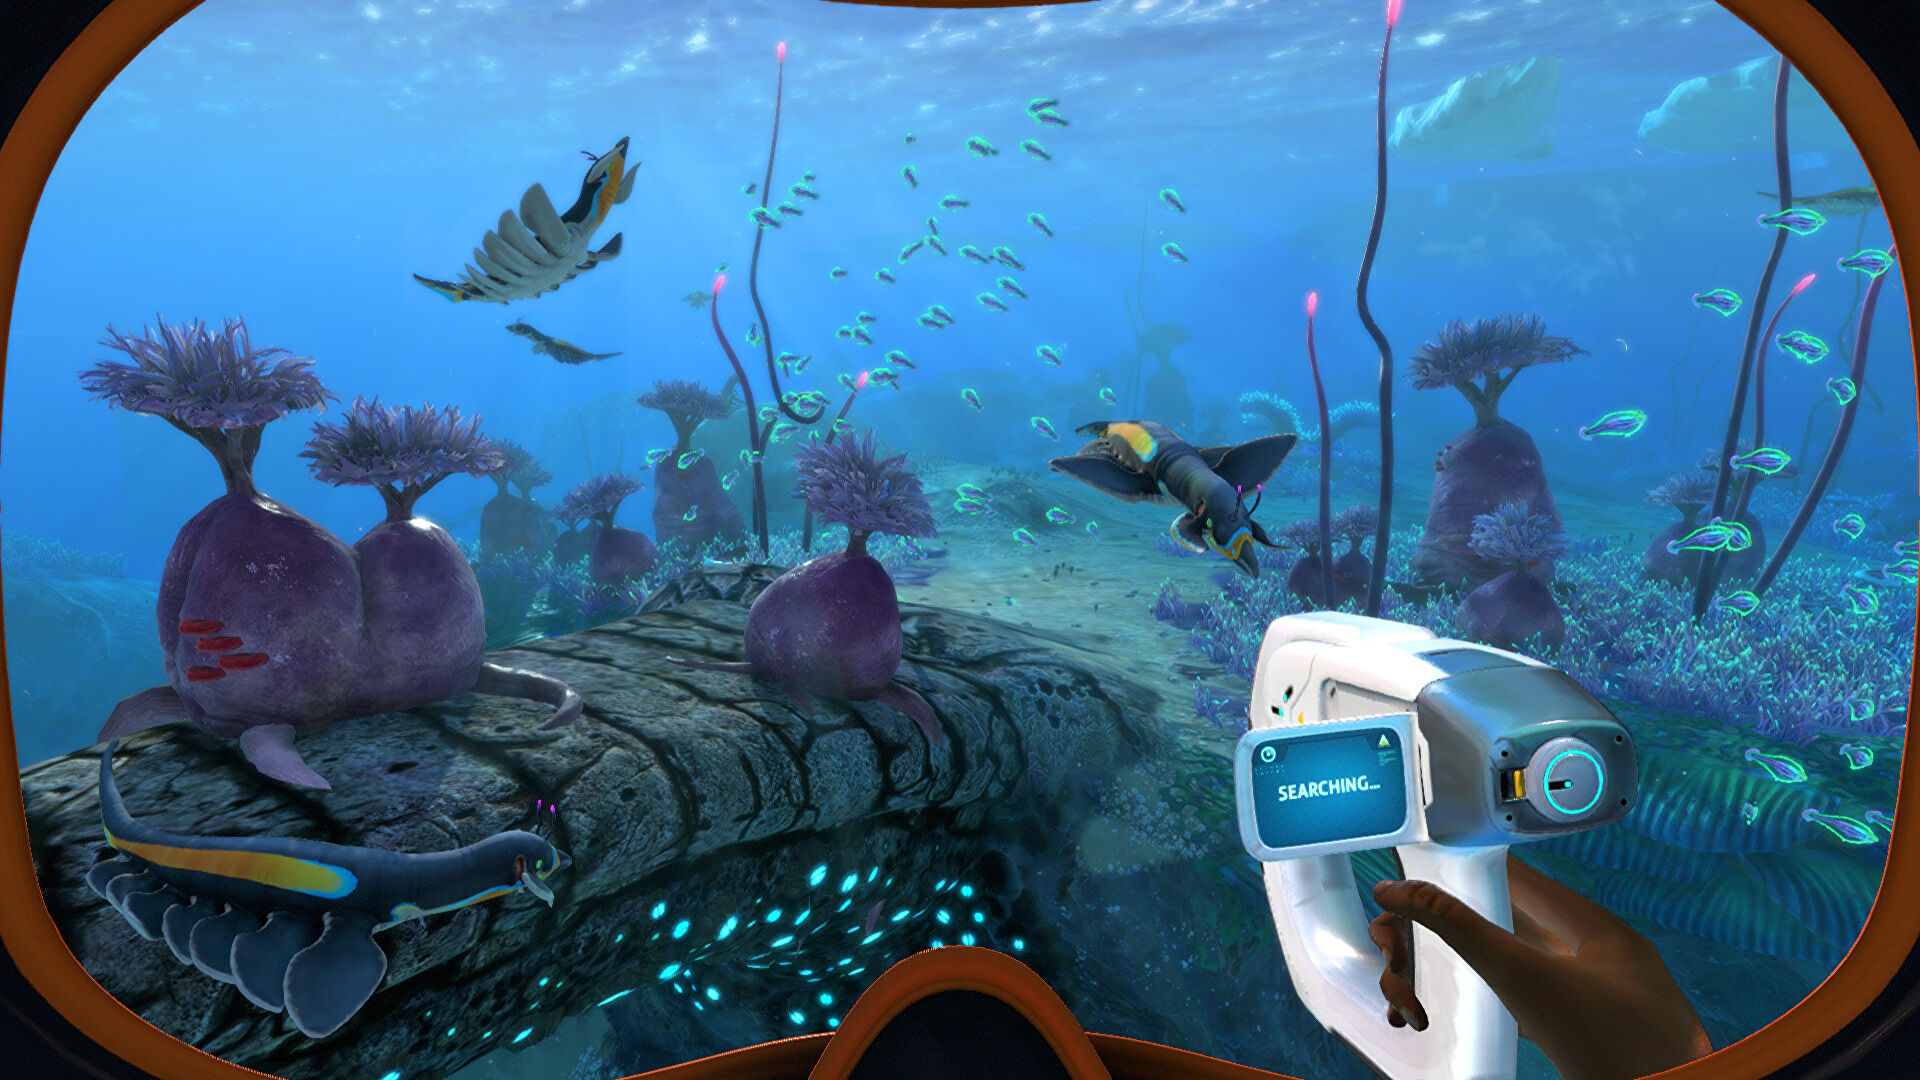 Subnautica: Below Zero surfaces out of early access in May